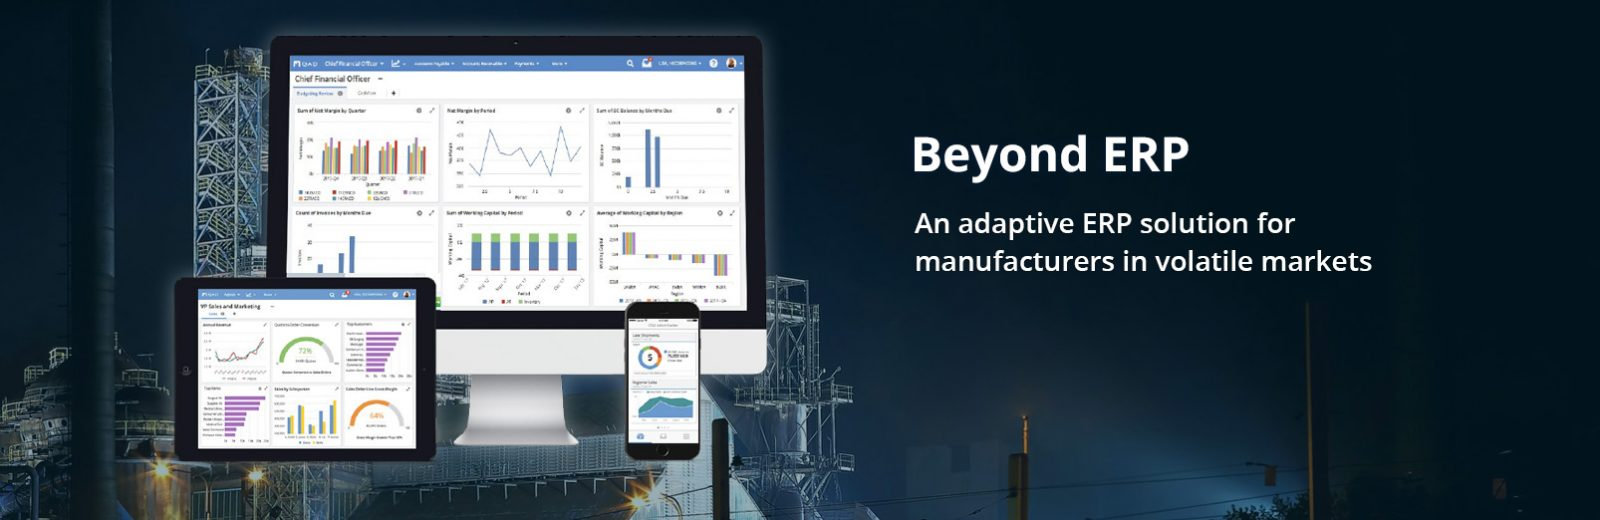 next-generation-erp-for-manufacturing-banner